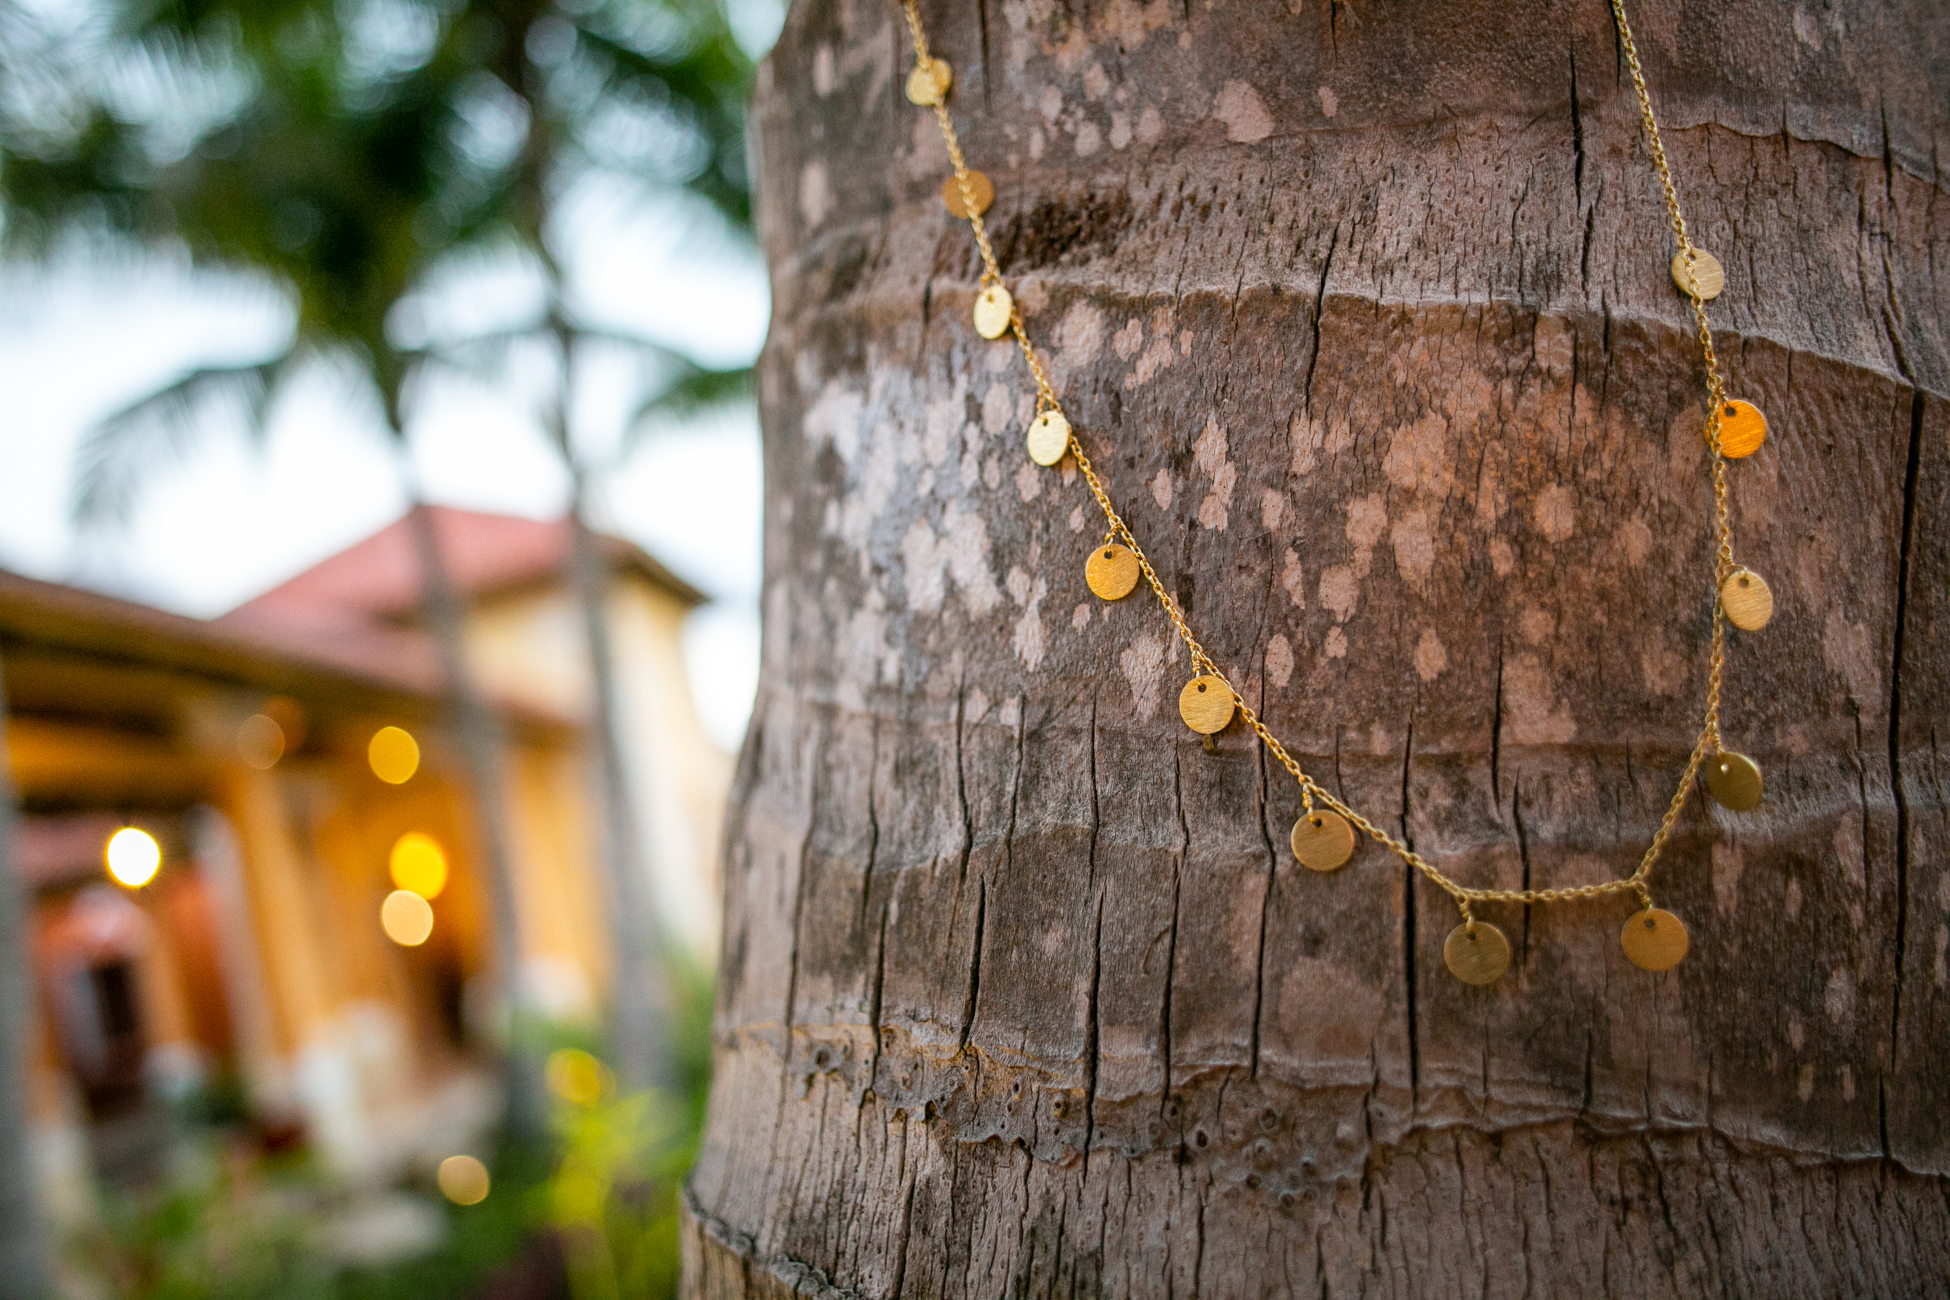 Susan Rifkin  necklace on palm tree